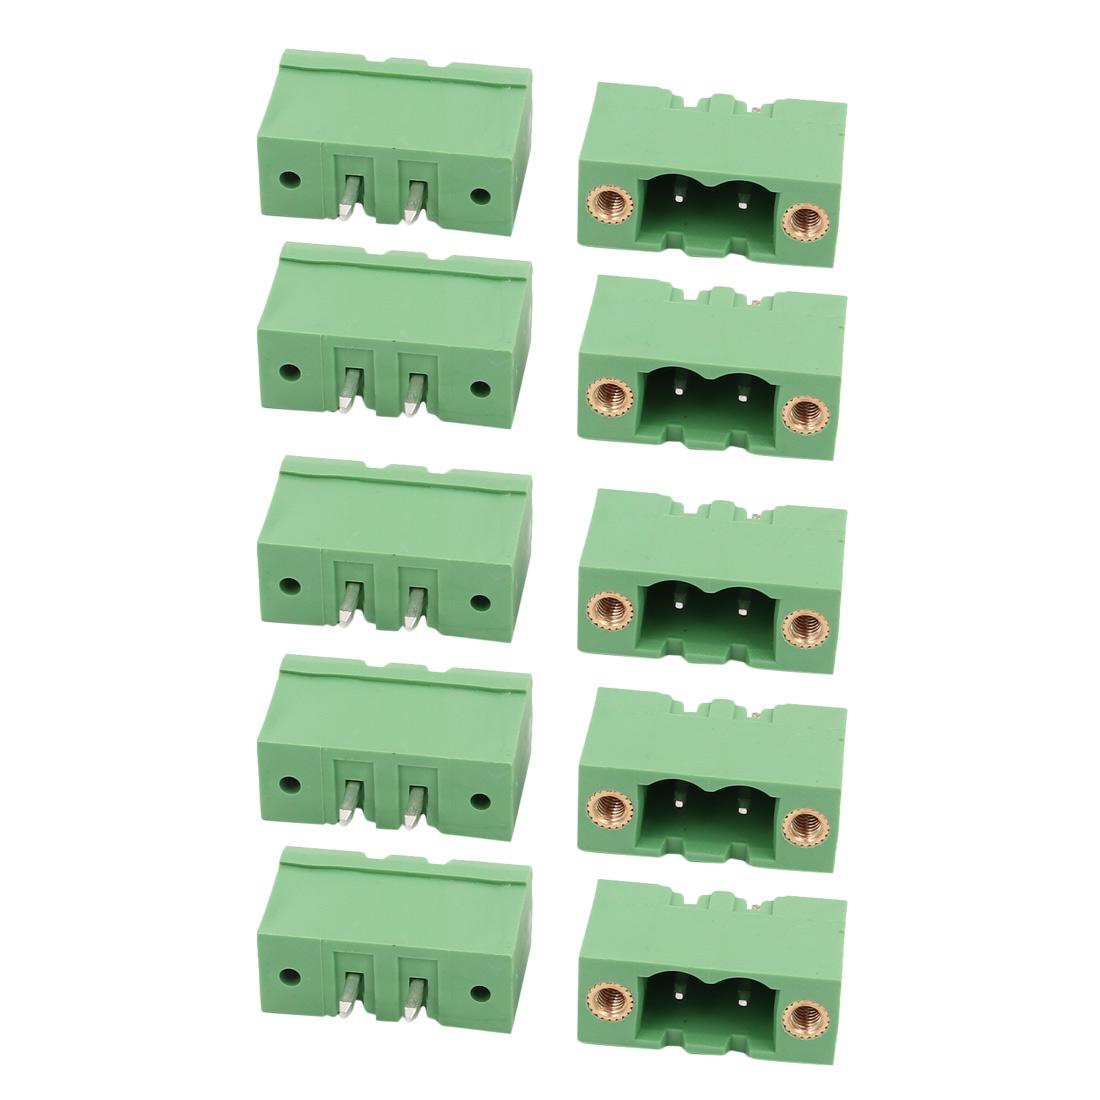 10 Pcs LZ1VM 5.0mm Pitch 2P PCB Mounting Terminal Block Wire Connector